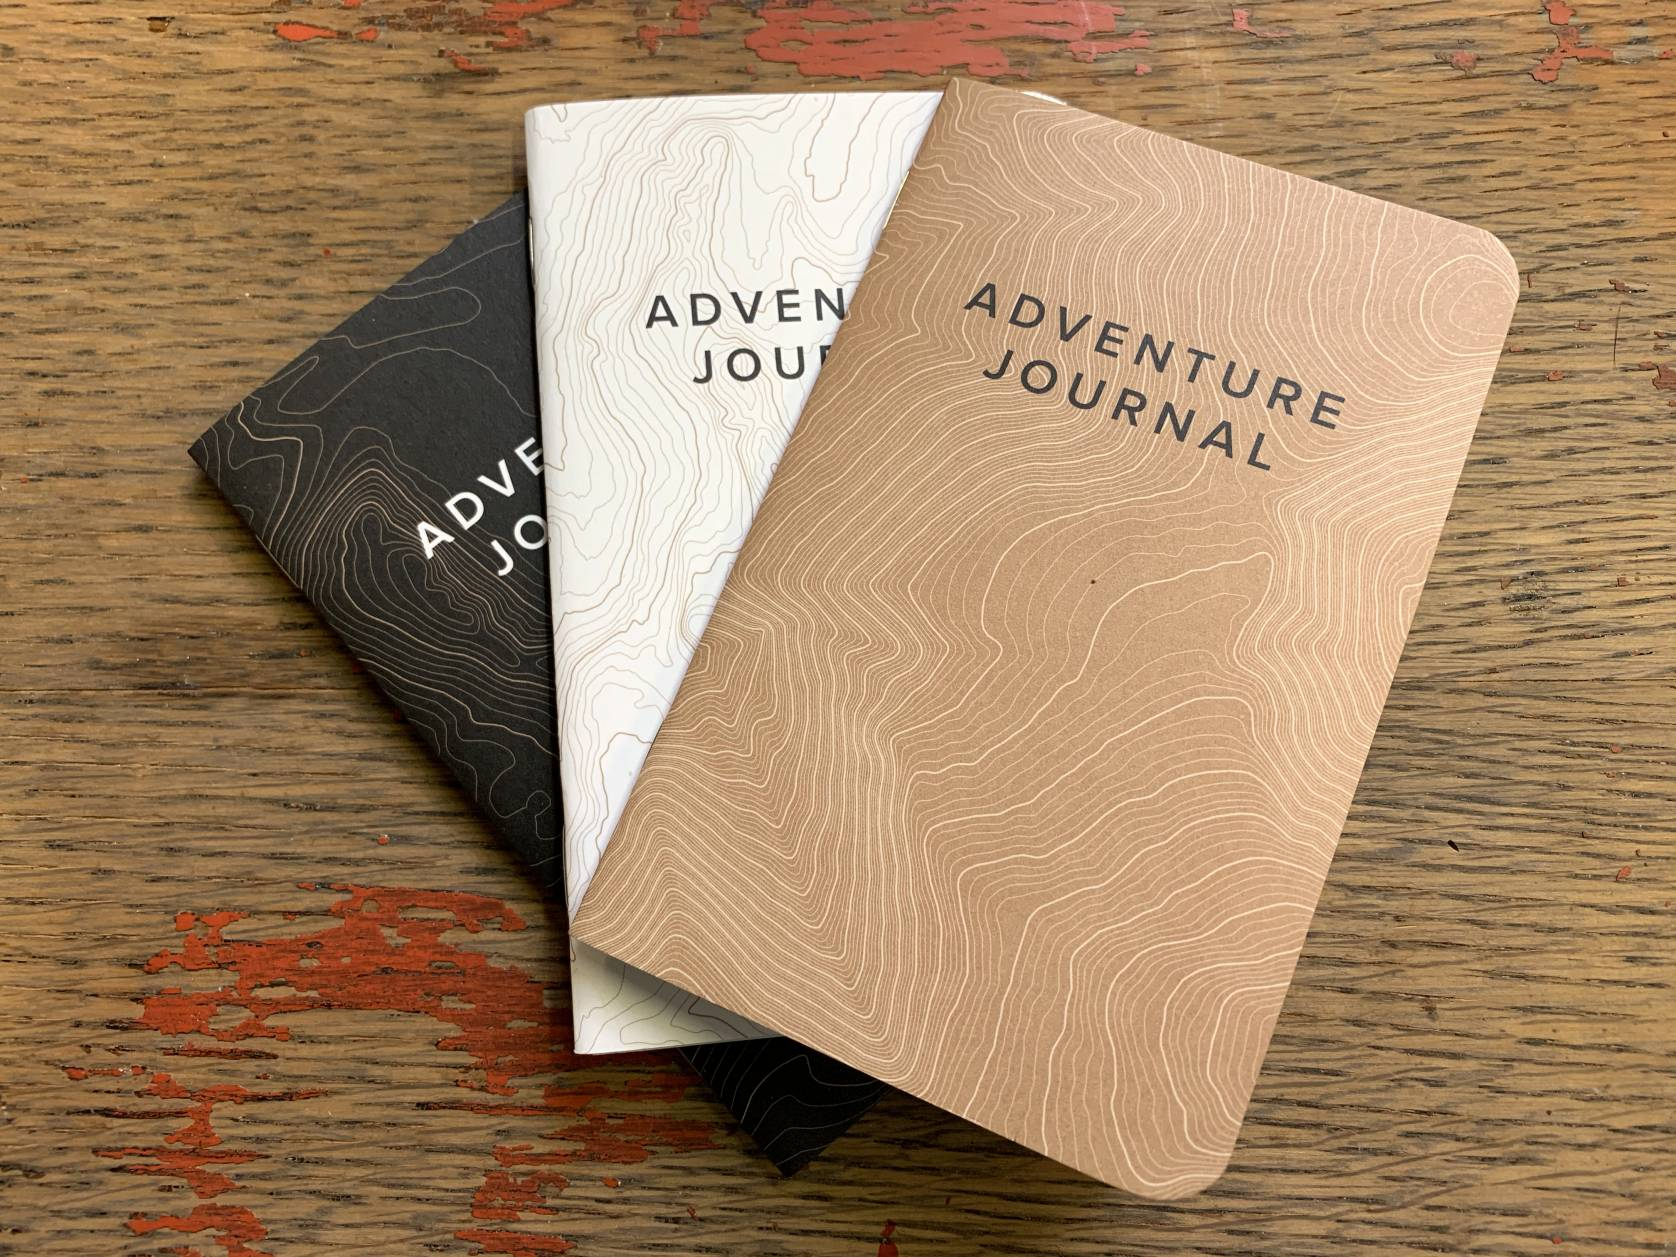 trio of adventure journal notebooks fanned out on table